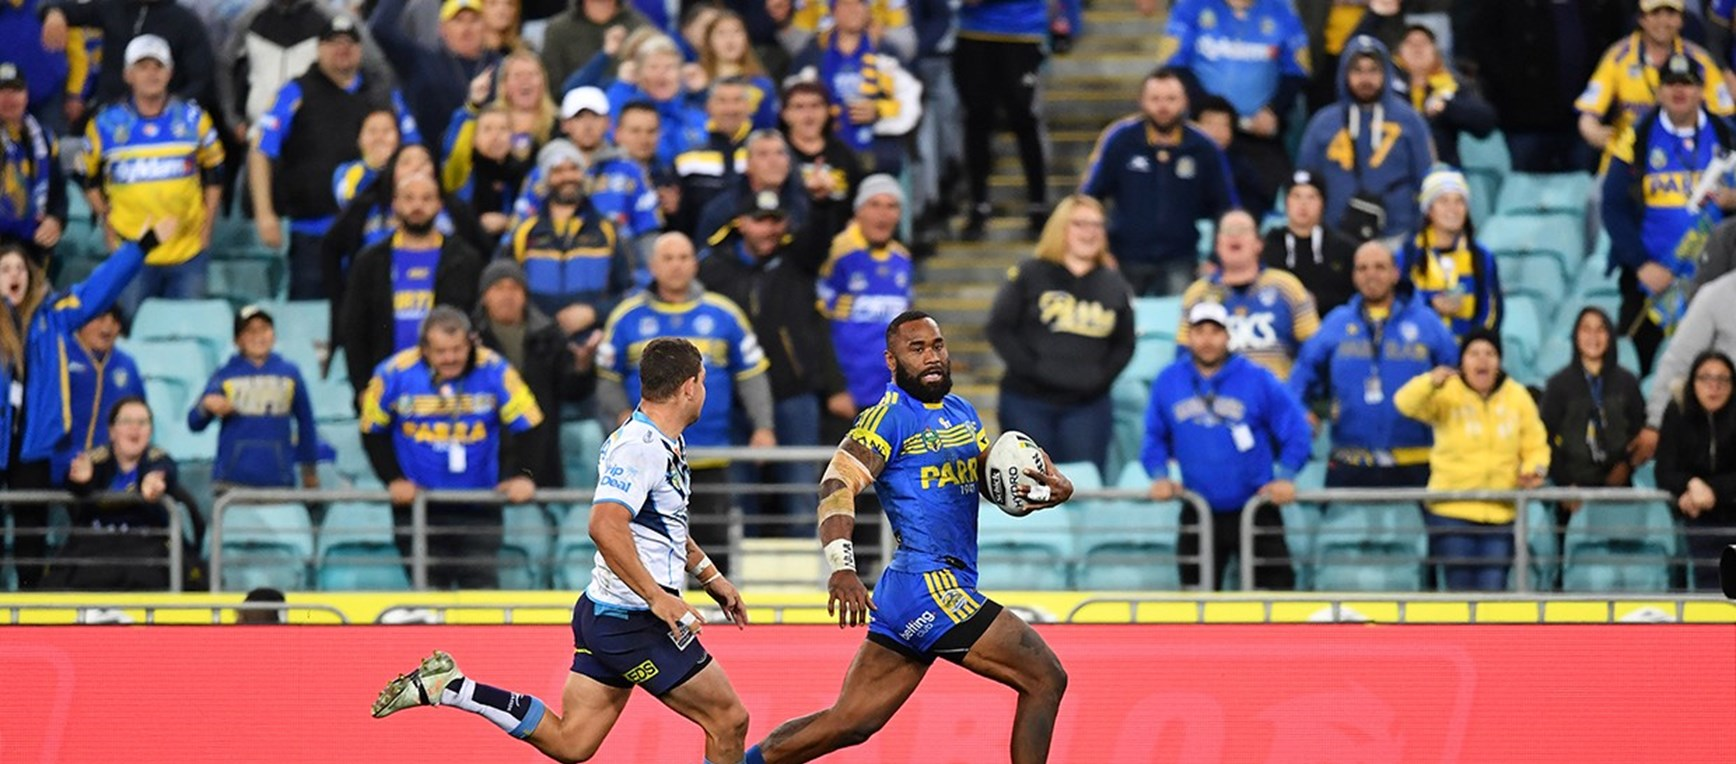 GALLERY | Eels v Titans, Round 24